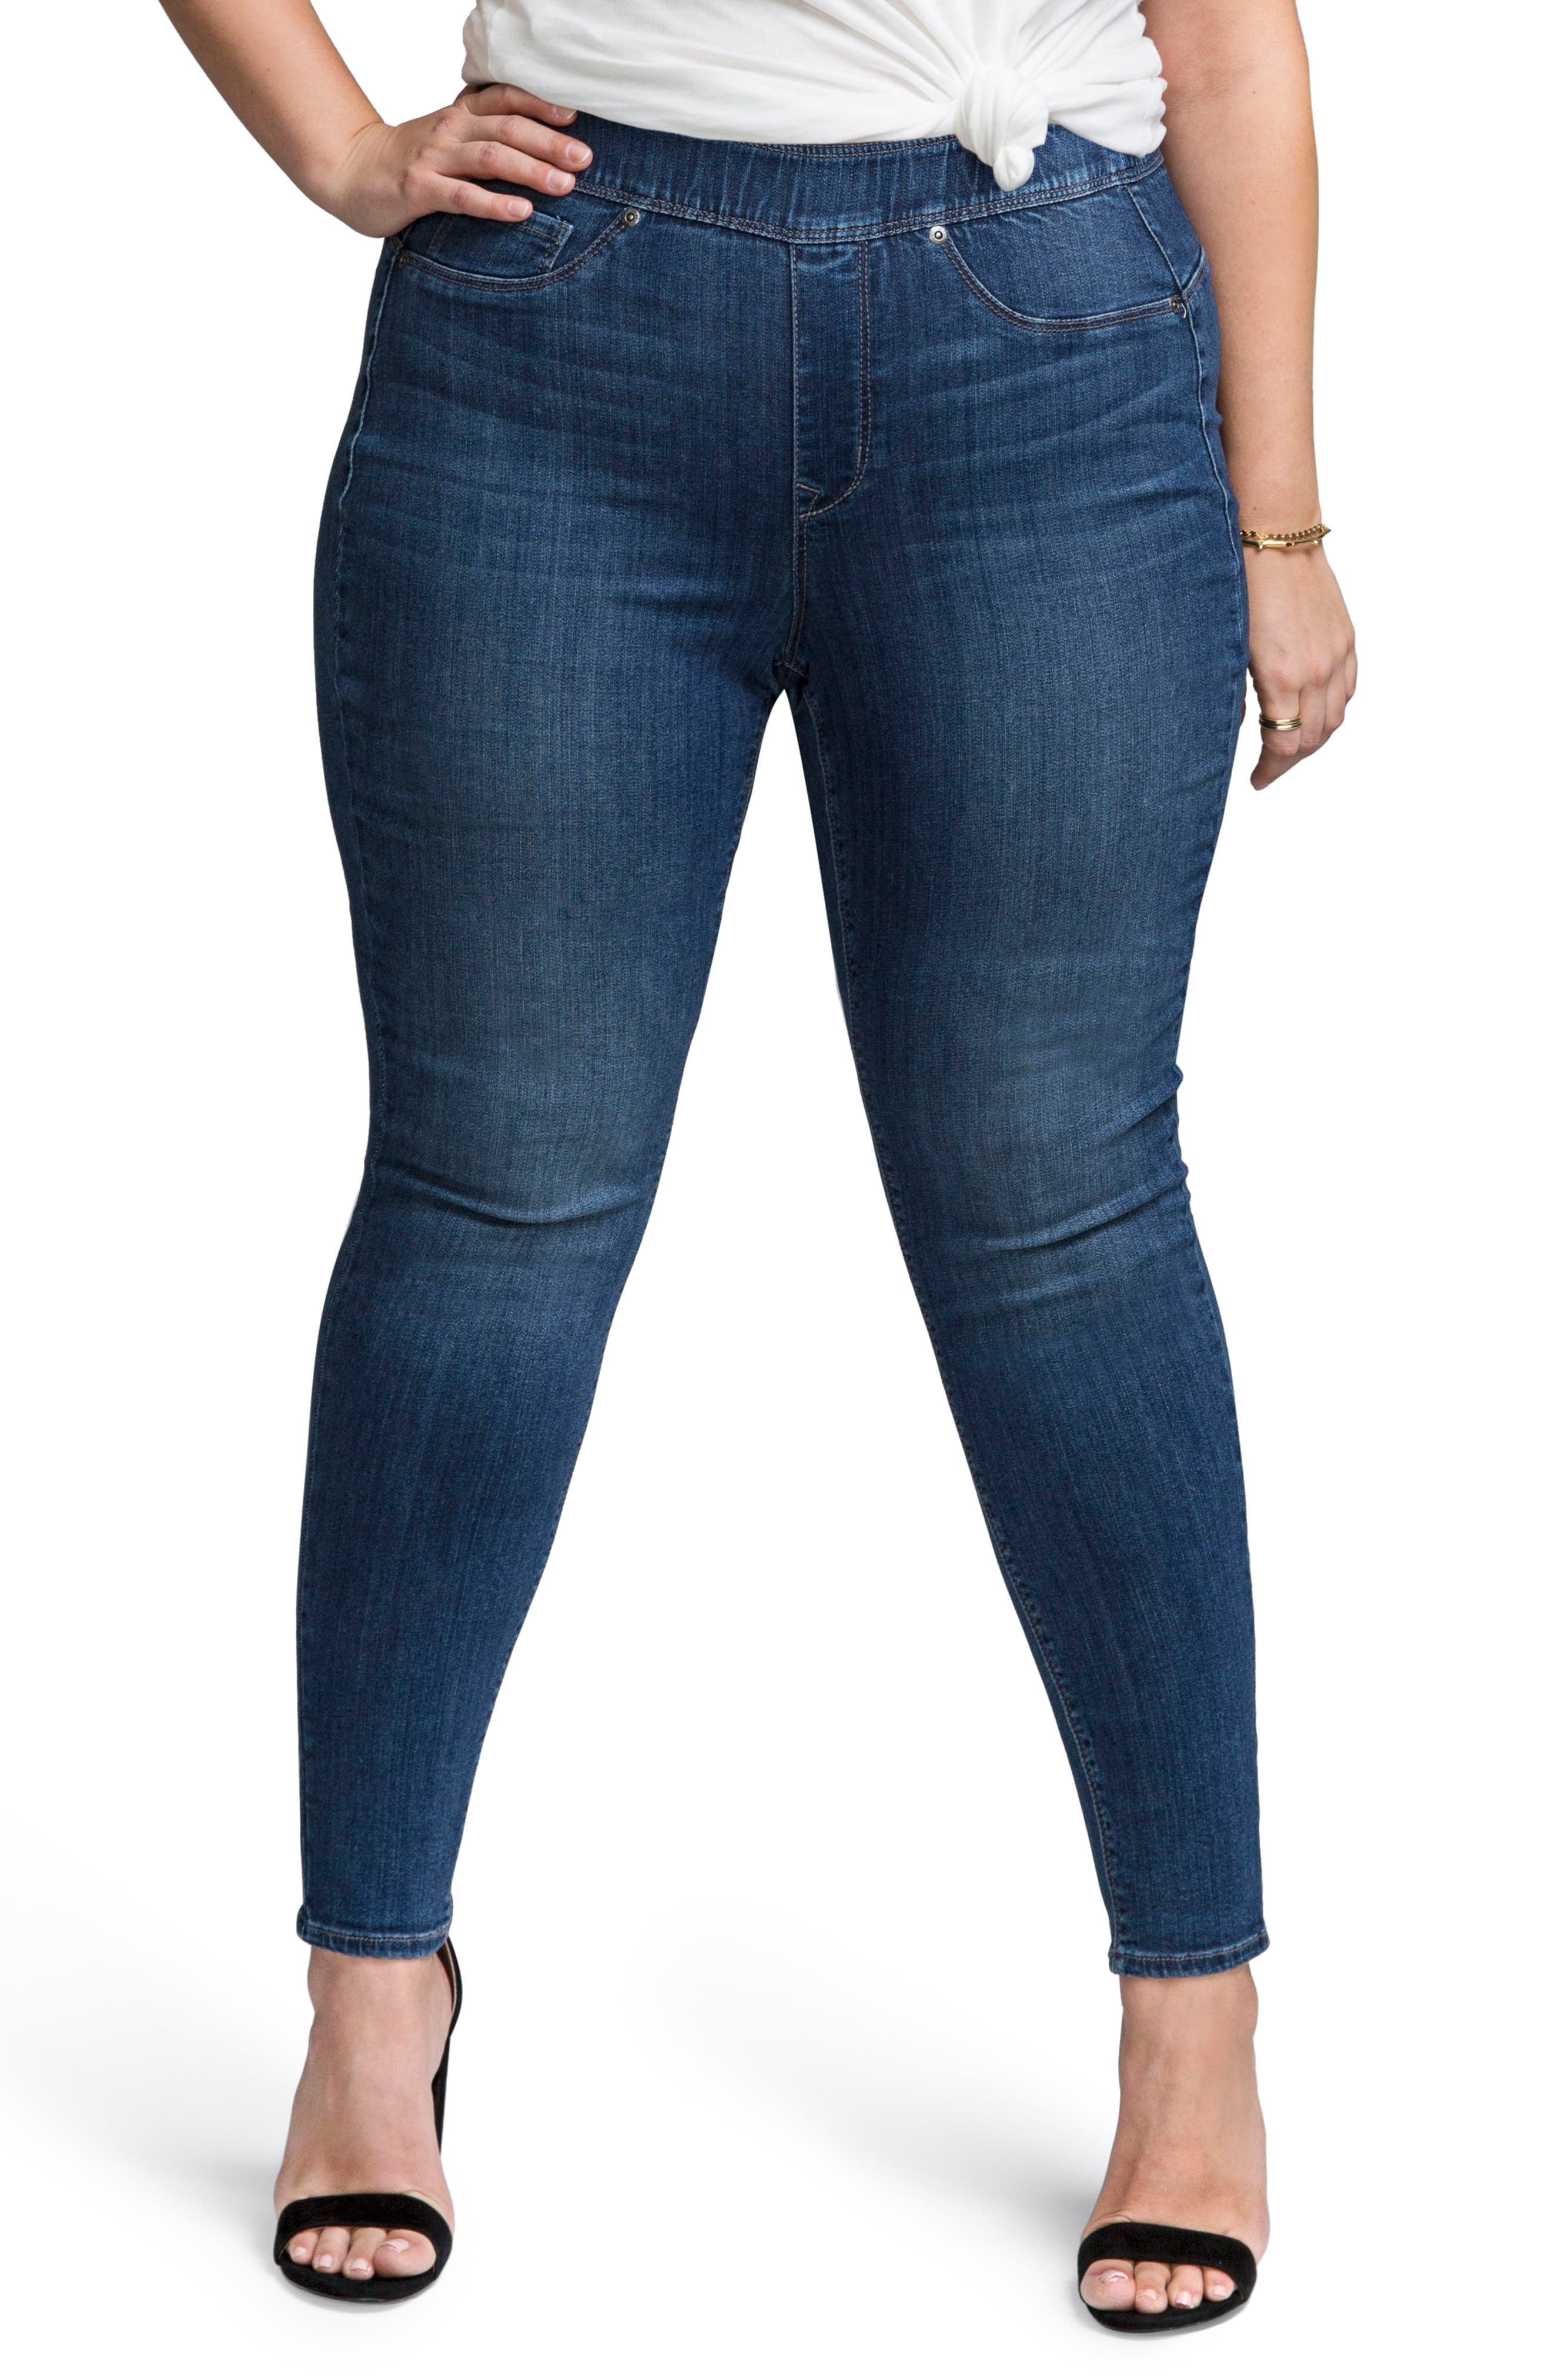 Curves 360 by NYDJ Sculpted Denim Leggings